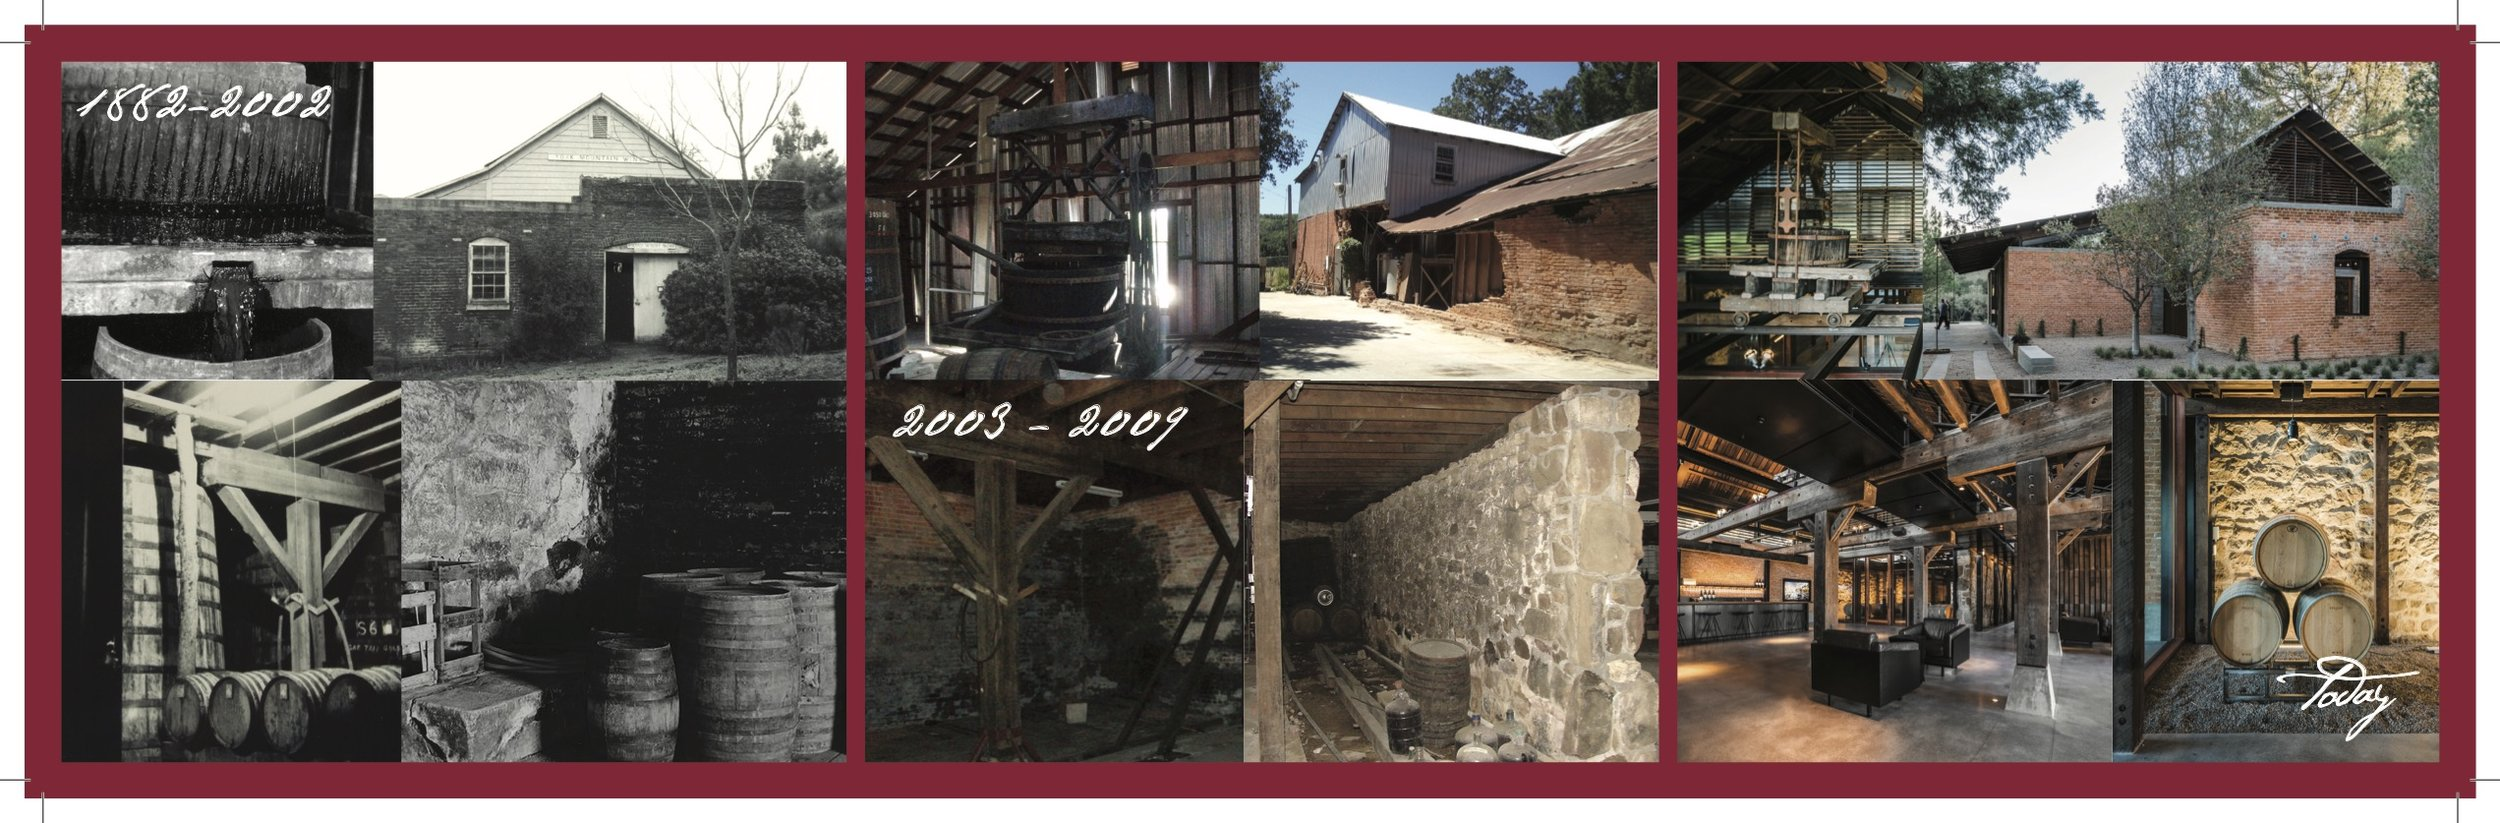 The phases of York Mountain: 1882 – 2002: before the San Simeon Earthquake; 2003 – 2009: post-Earthquake until foreclosure; today: as our new Tasting Room.  You can see the original bricks, stones, beams, and wine press used throughout all of these phases of YMW's lif